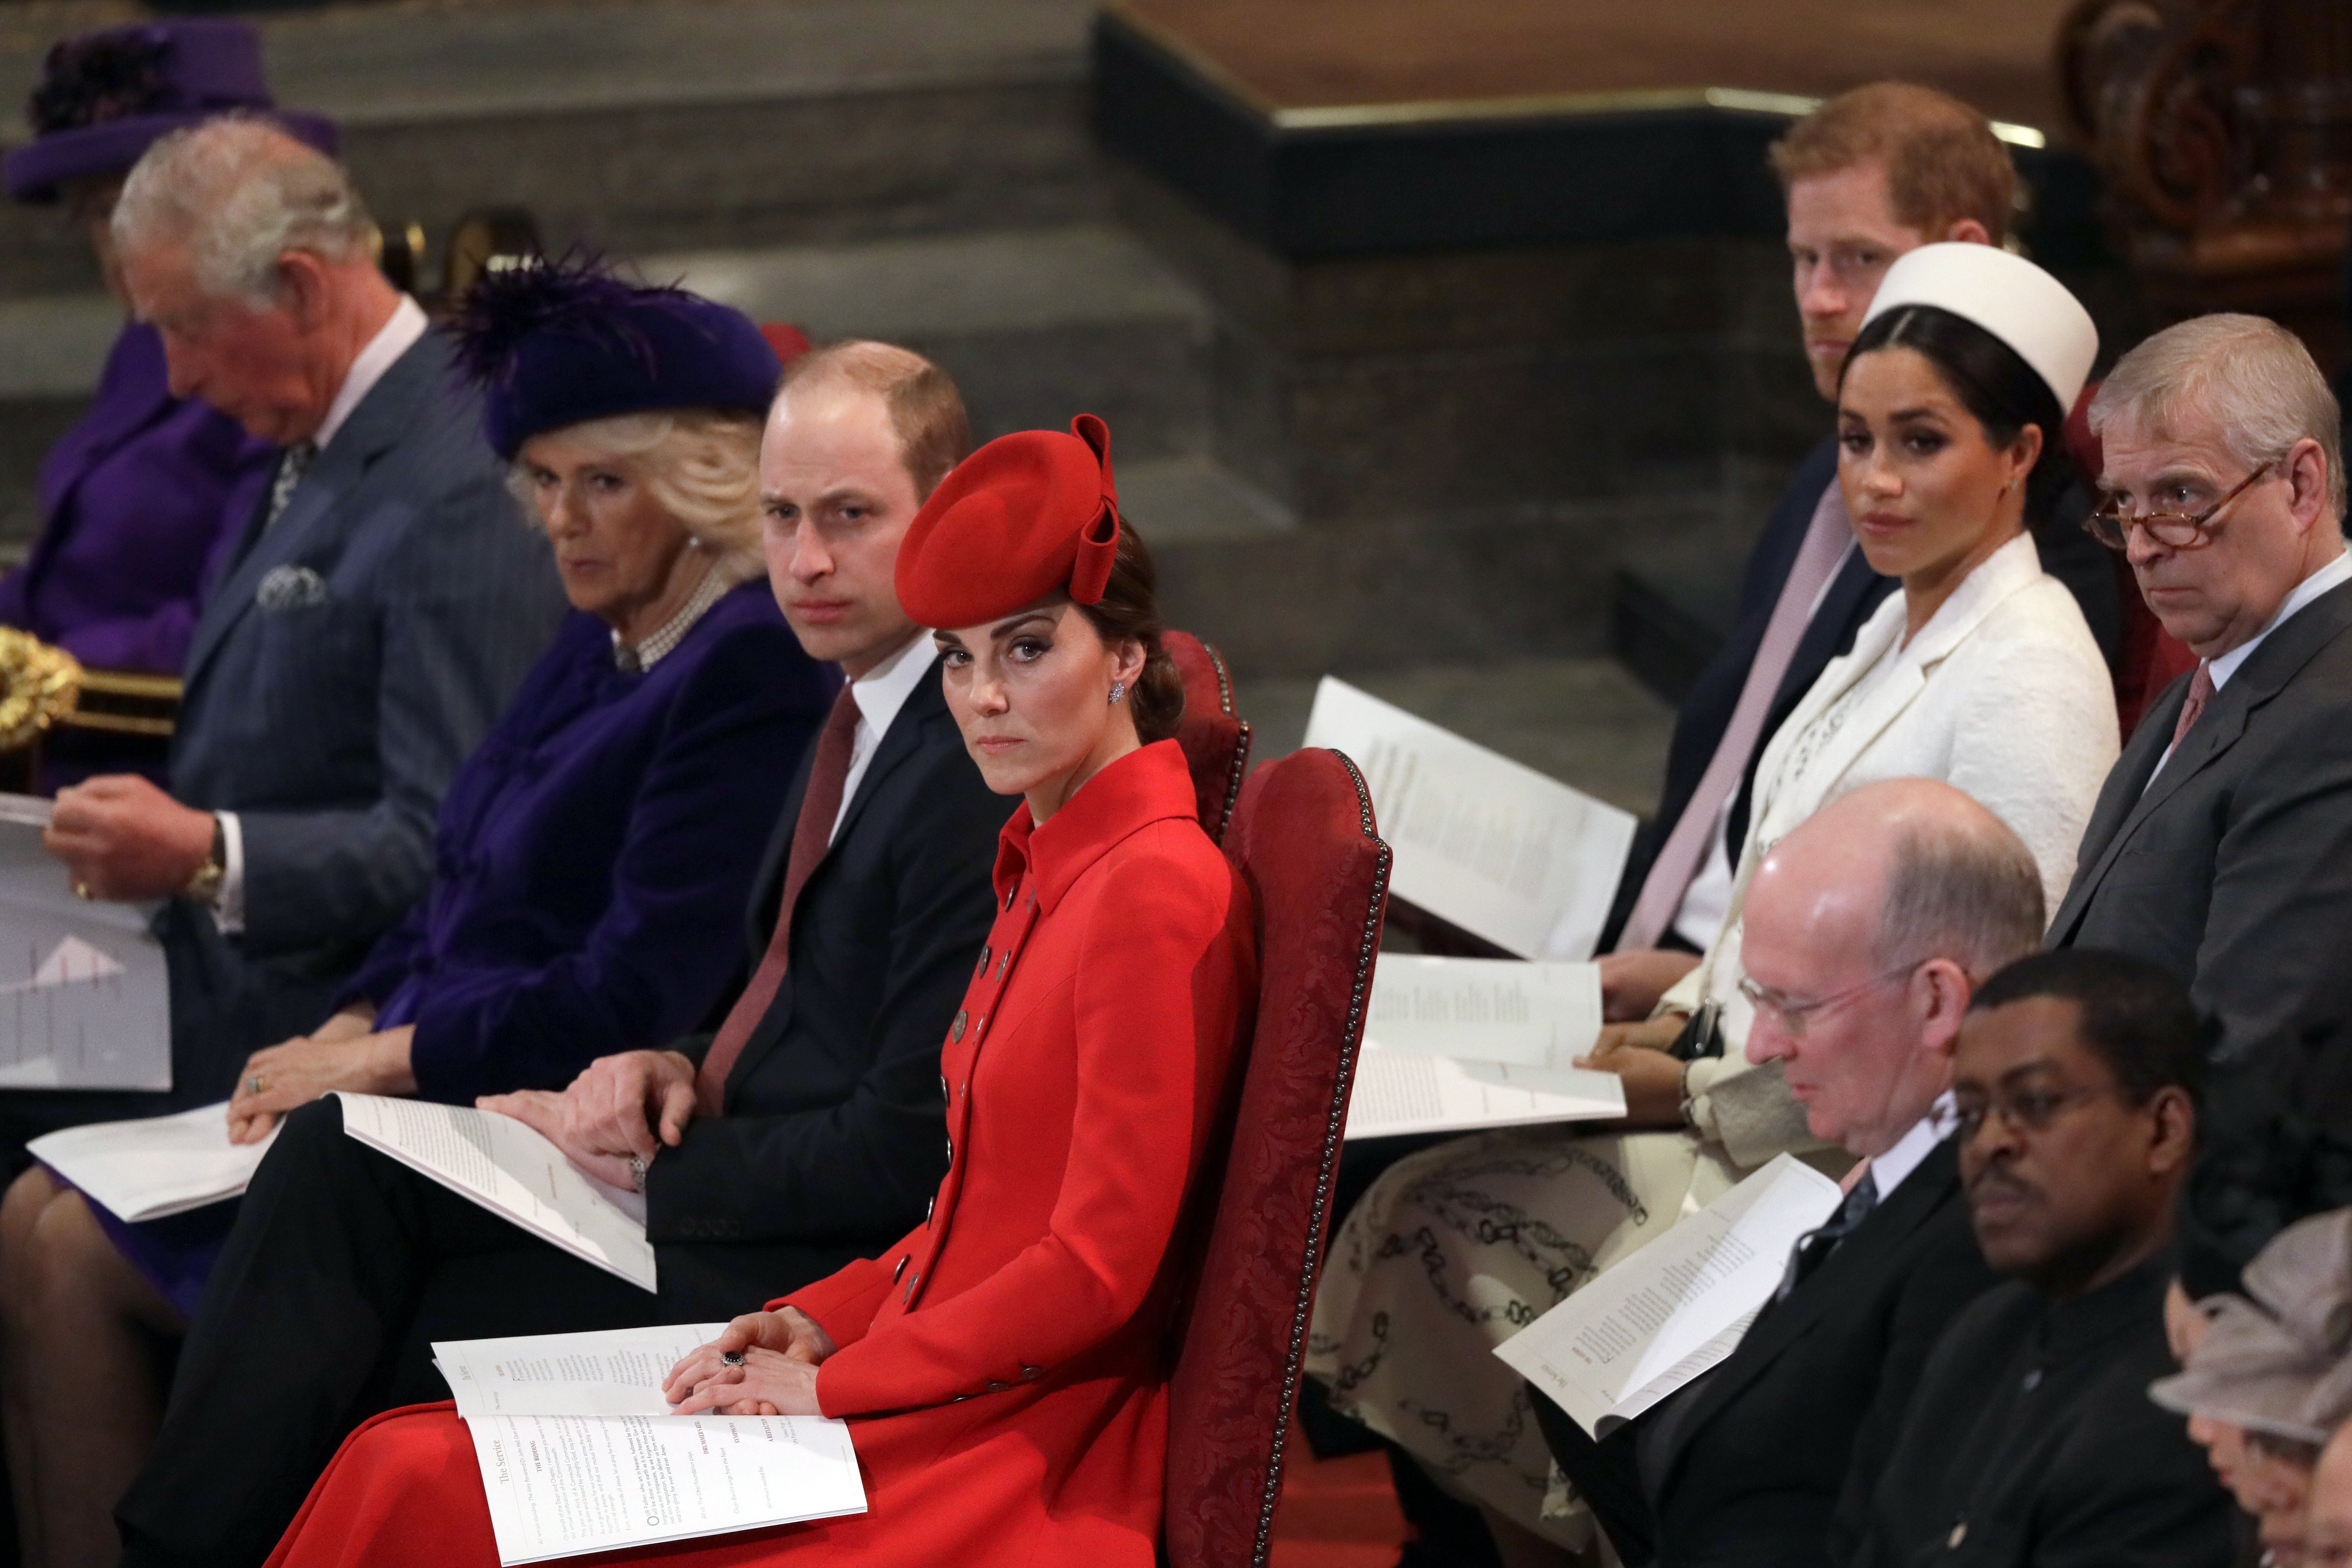 Kate Middleton and Meghan Markle with Prince William, Prince Harry, Camilla Parker-Bowles, Prince Charles and Prince Andrew at the Commonwealth Service at Westminster Abbey in London, England | Photo: Getty Images